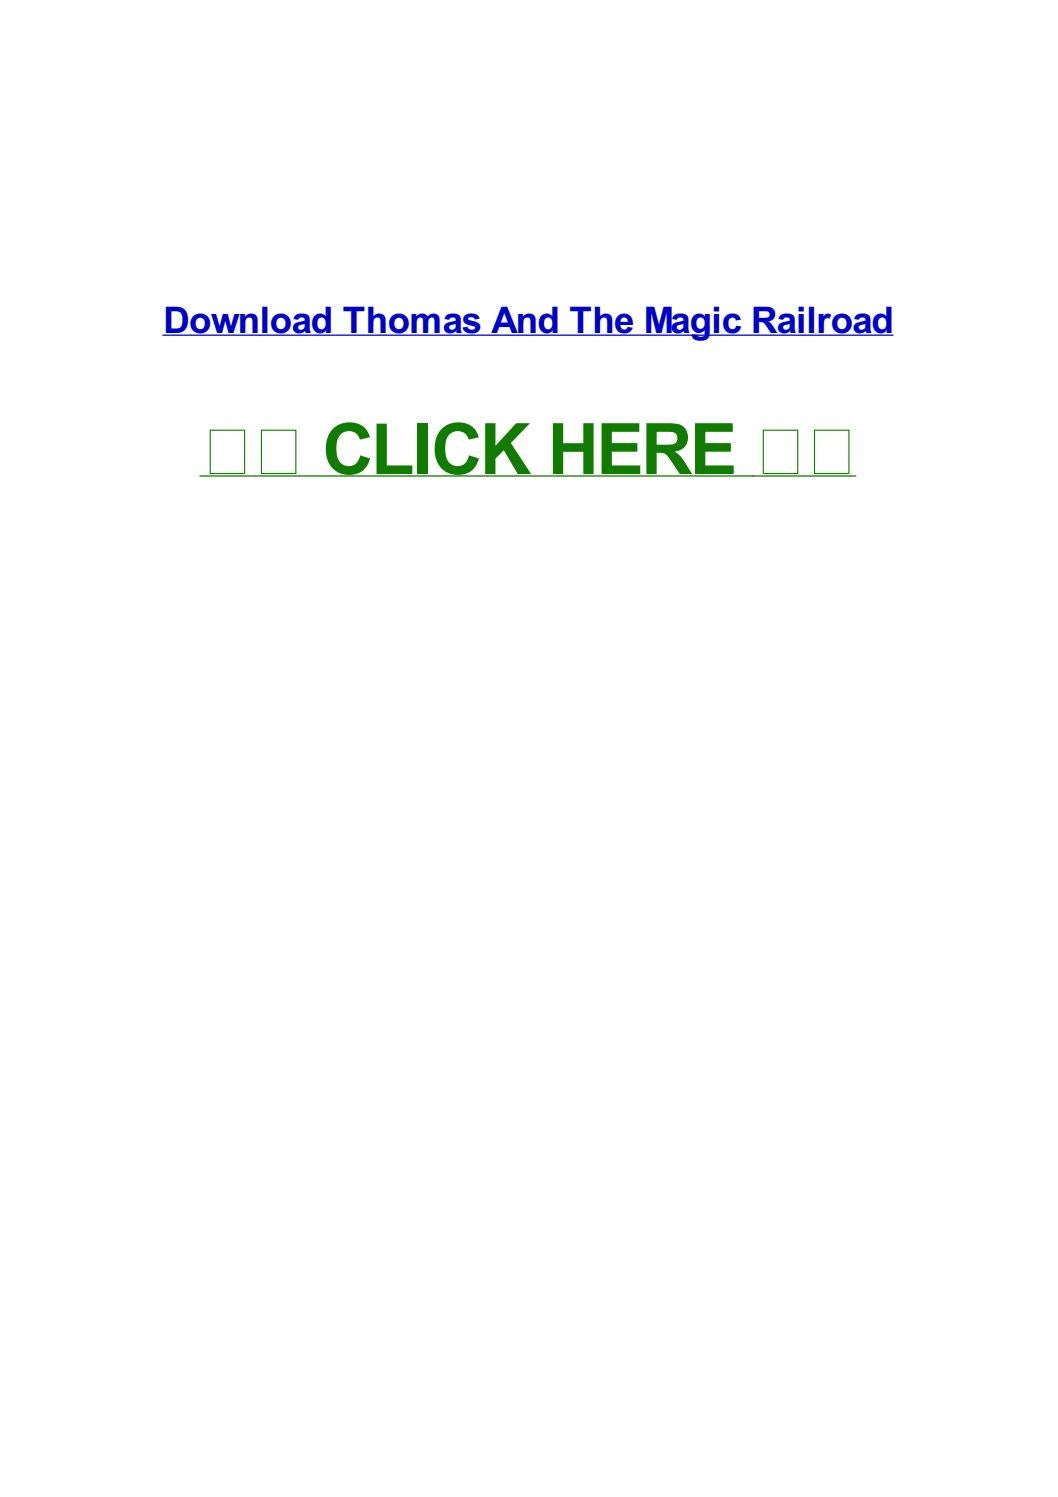 Thomas and the magic railroad by michelleebchv - issuu